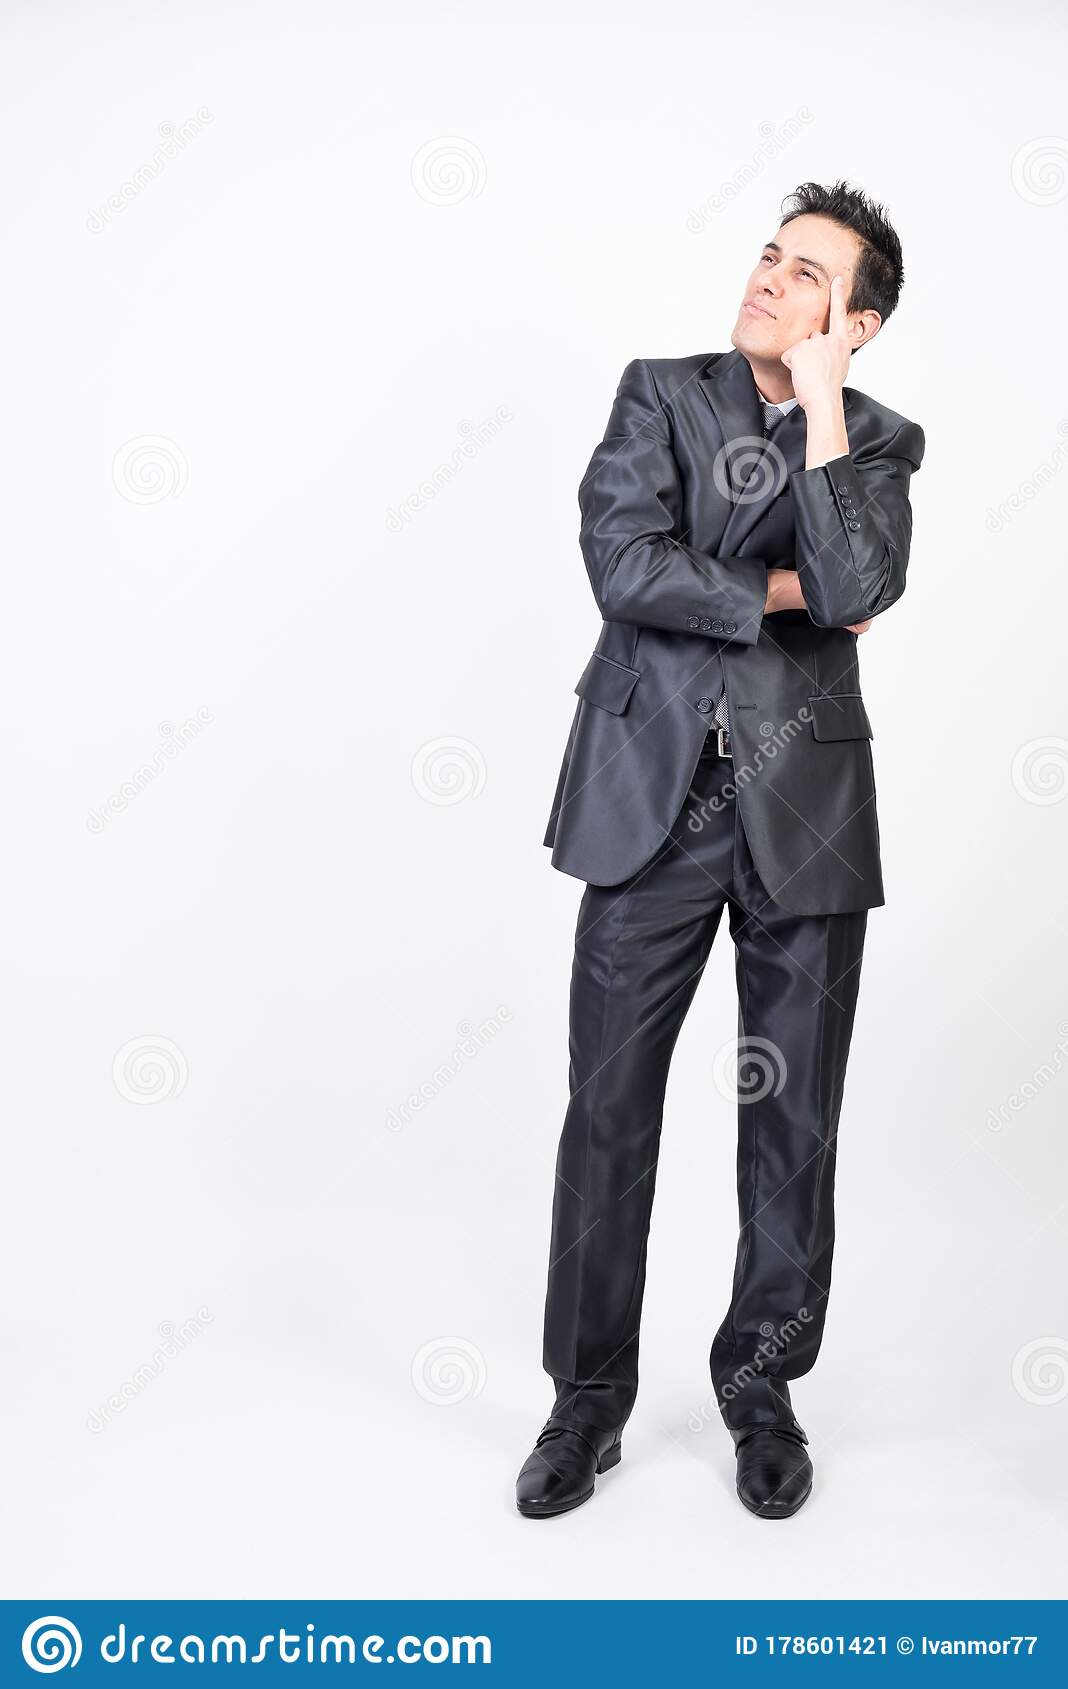 Dreamy man in suit stock image. Image of space, abstracted ...